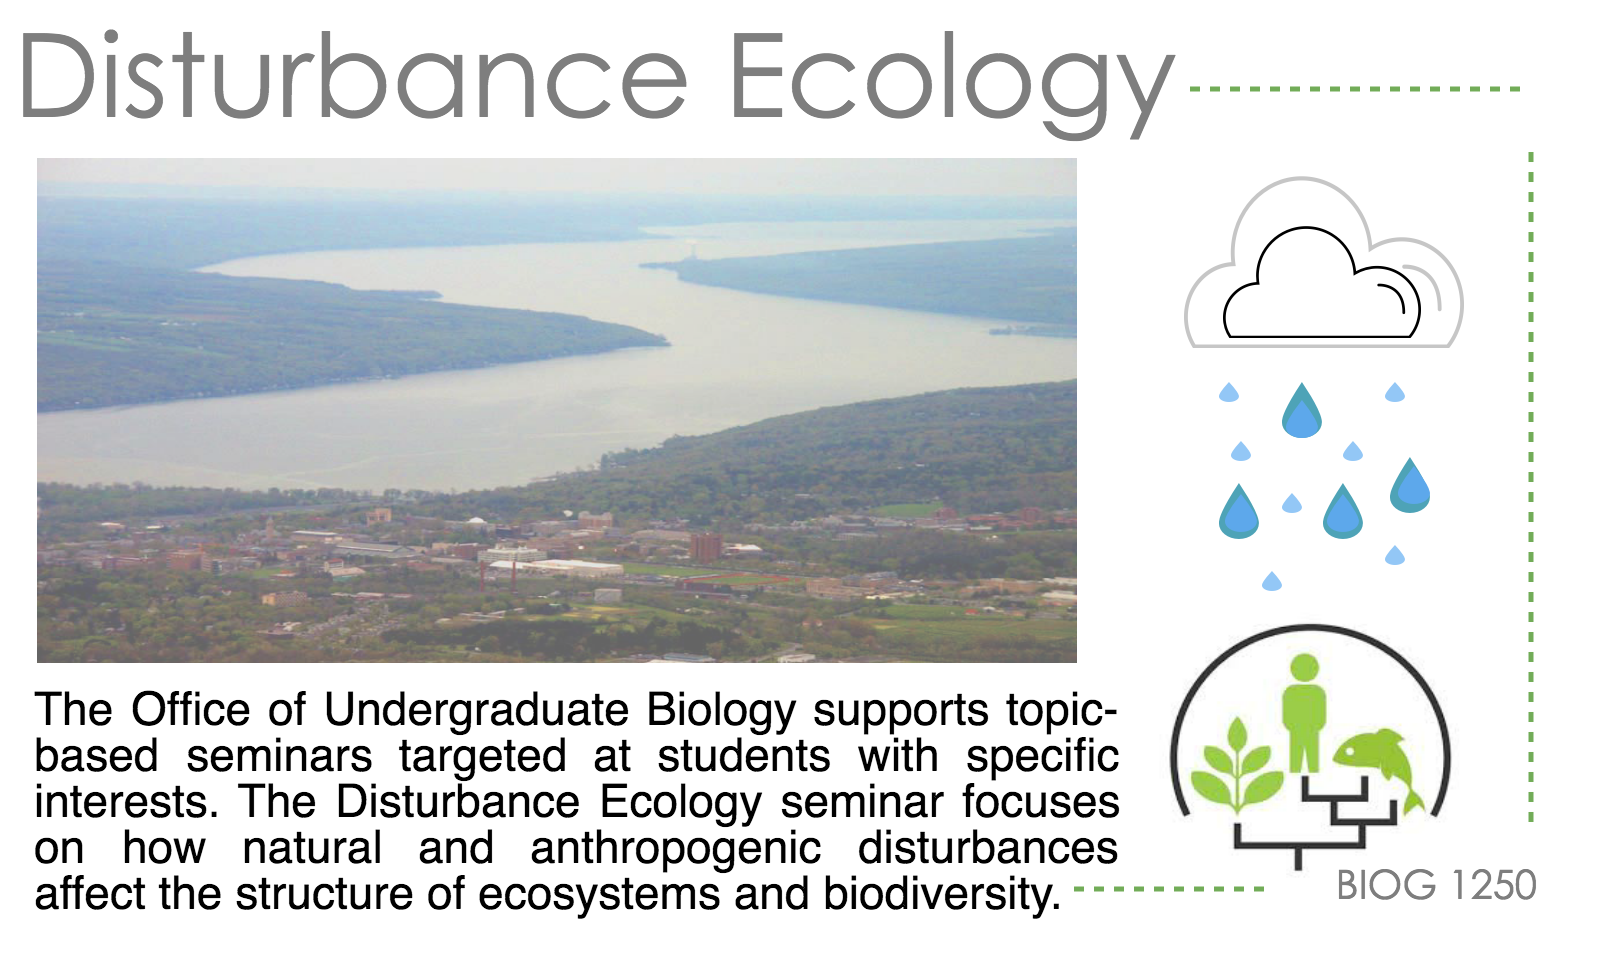 Disturbance Ecology seminar